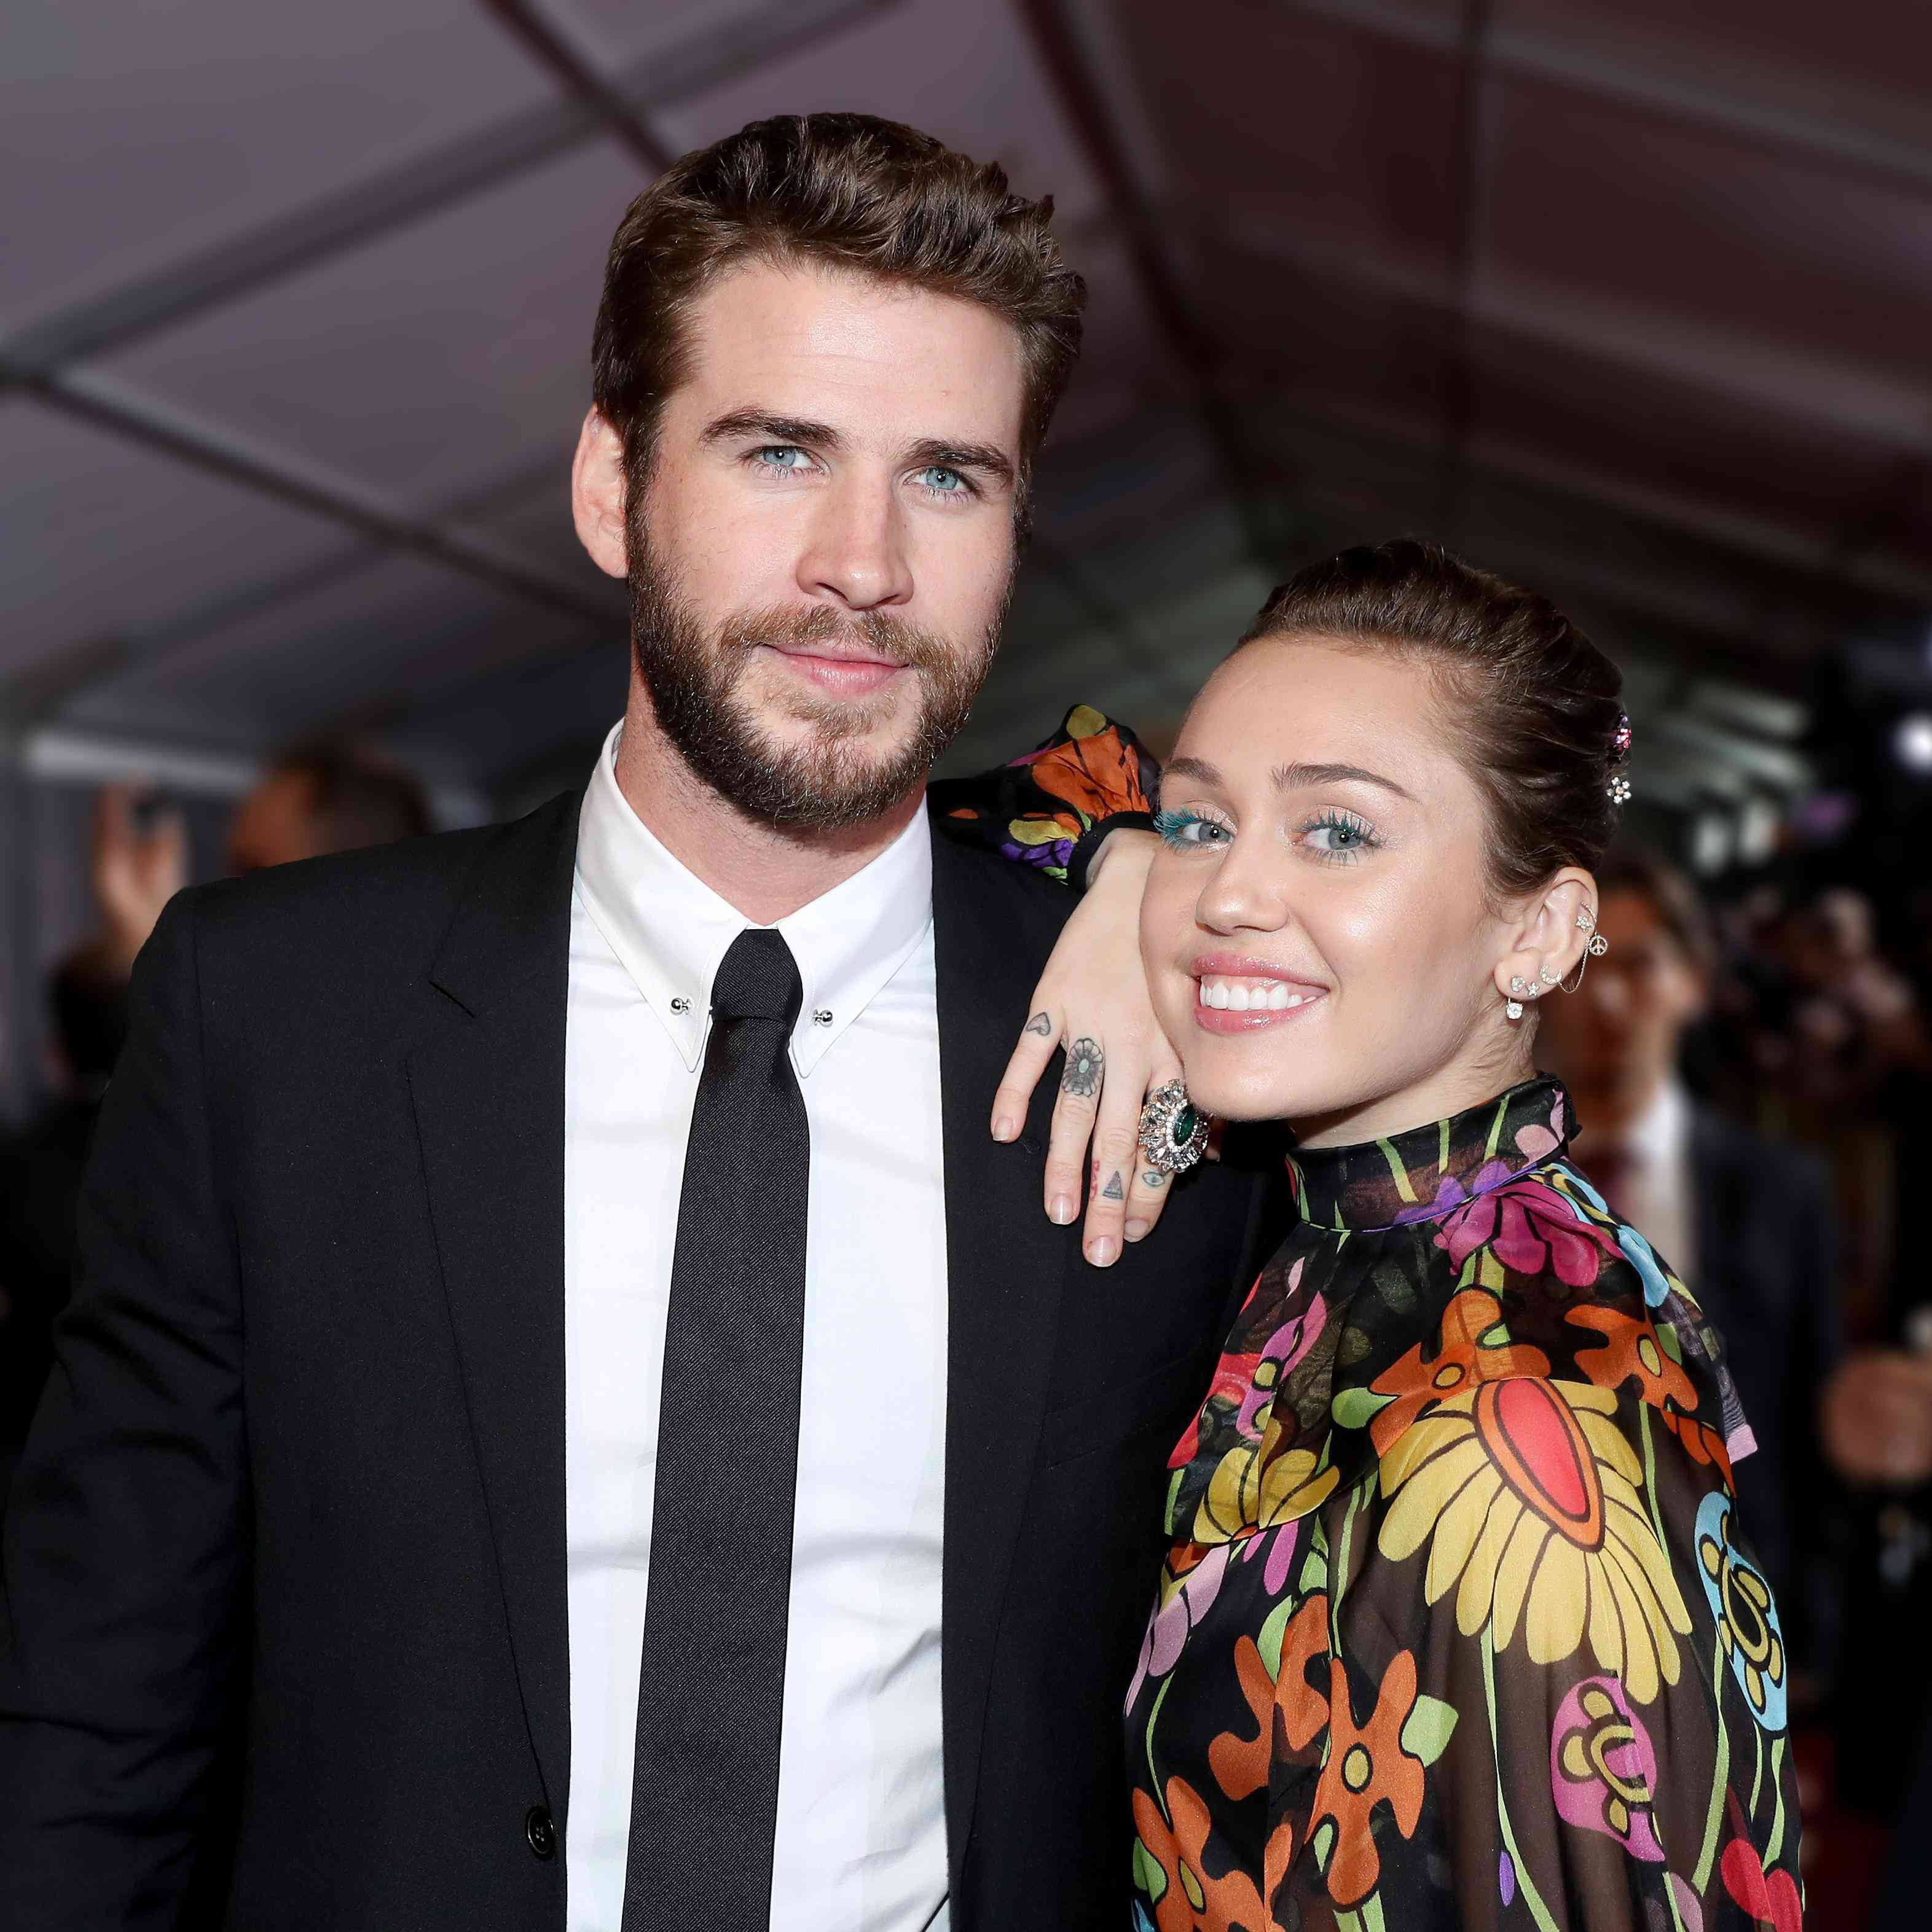 Last Song Wedding.Nicholas Sparks Congratulated Miley Cyrus And Liam Hemsworth